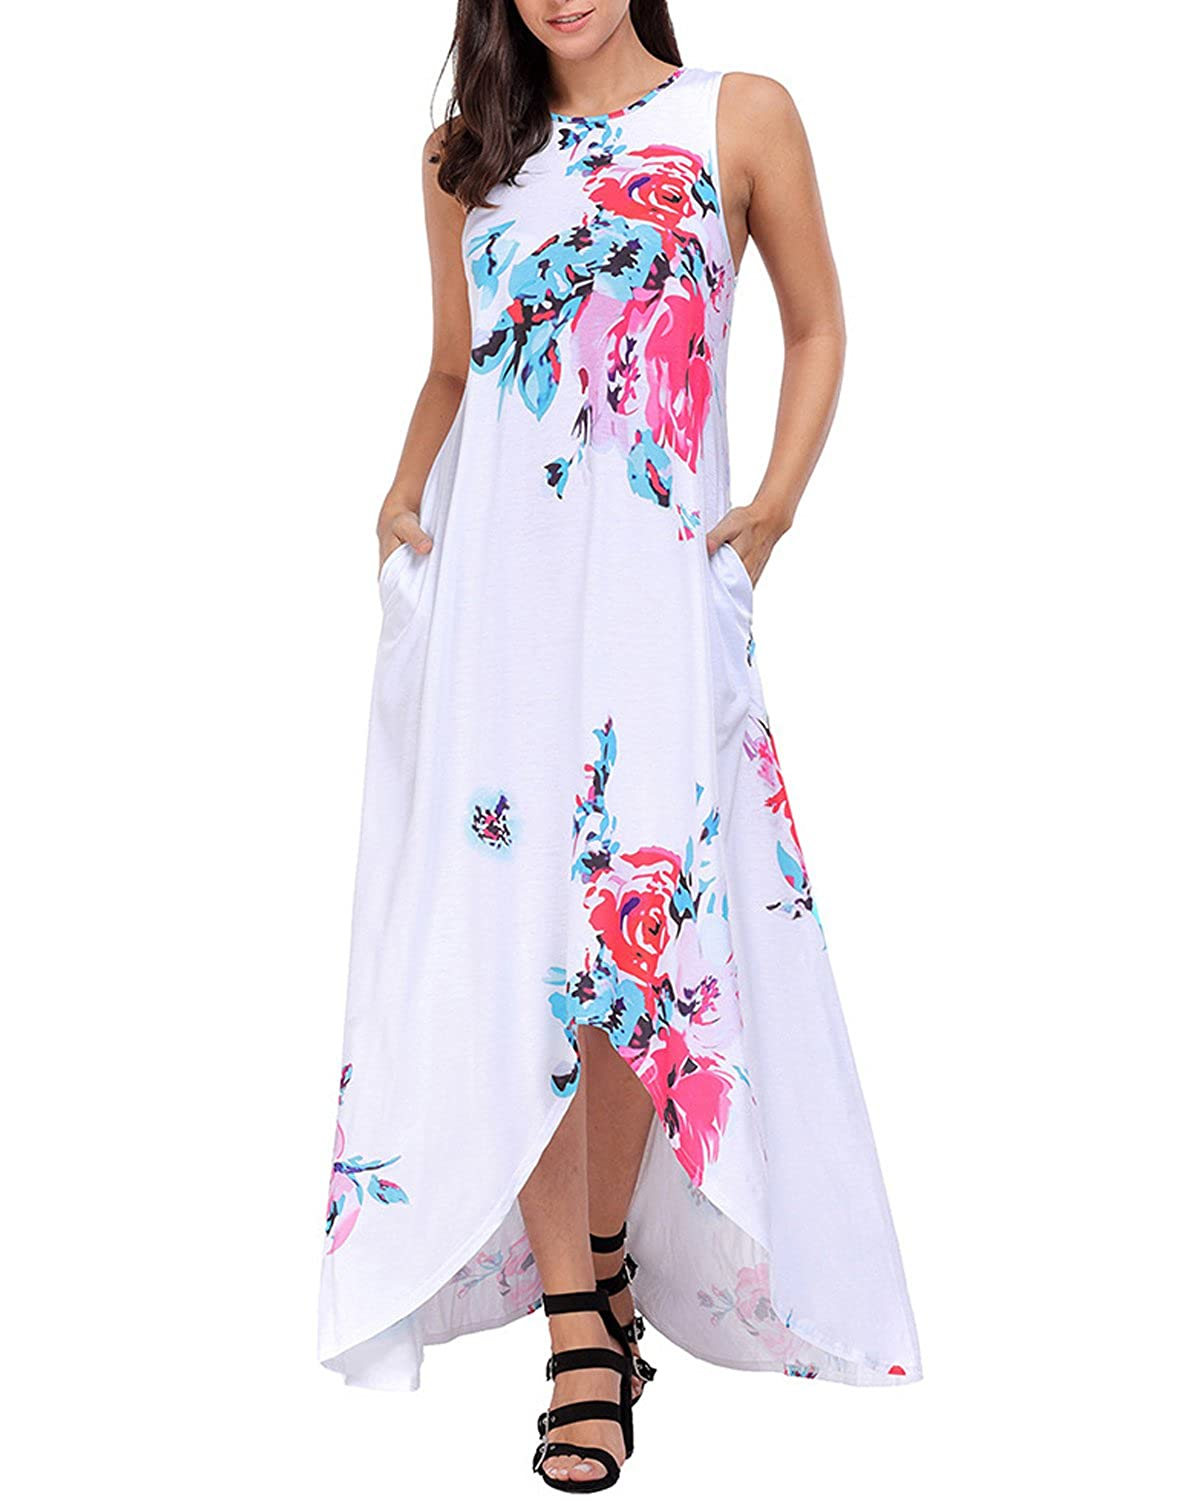 0e9d26141c3 Amazon.com: MODARESS Women's Summer Long Maxi Dress Floral Sleeveless  Pockets Hi-Lo Casual Dress: Clothing